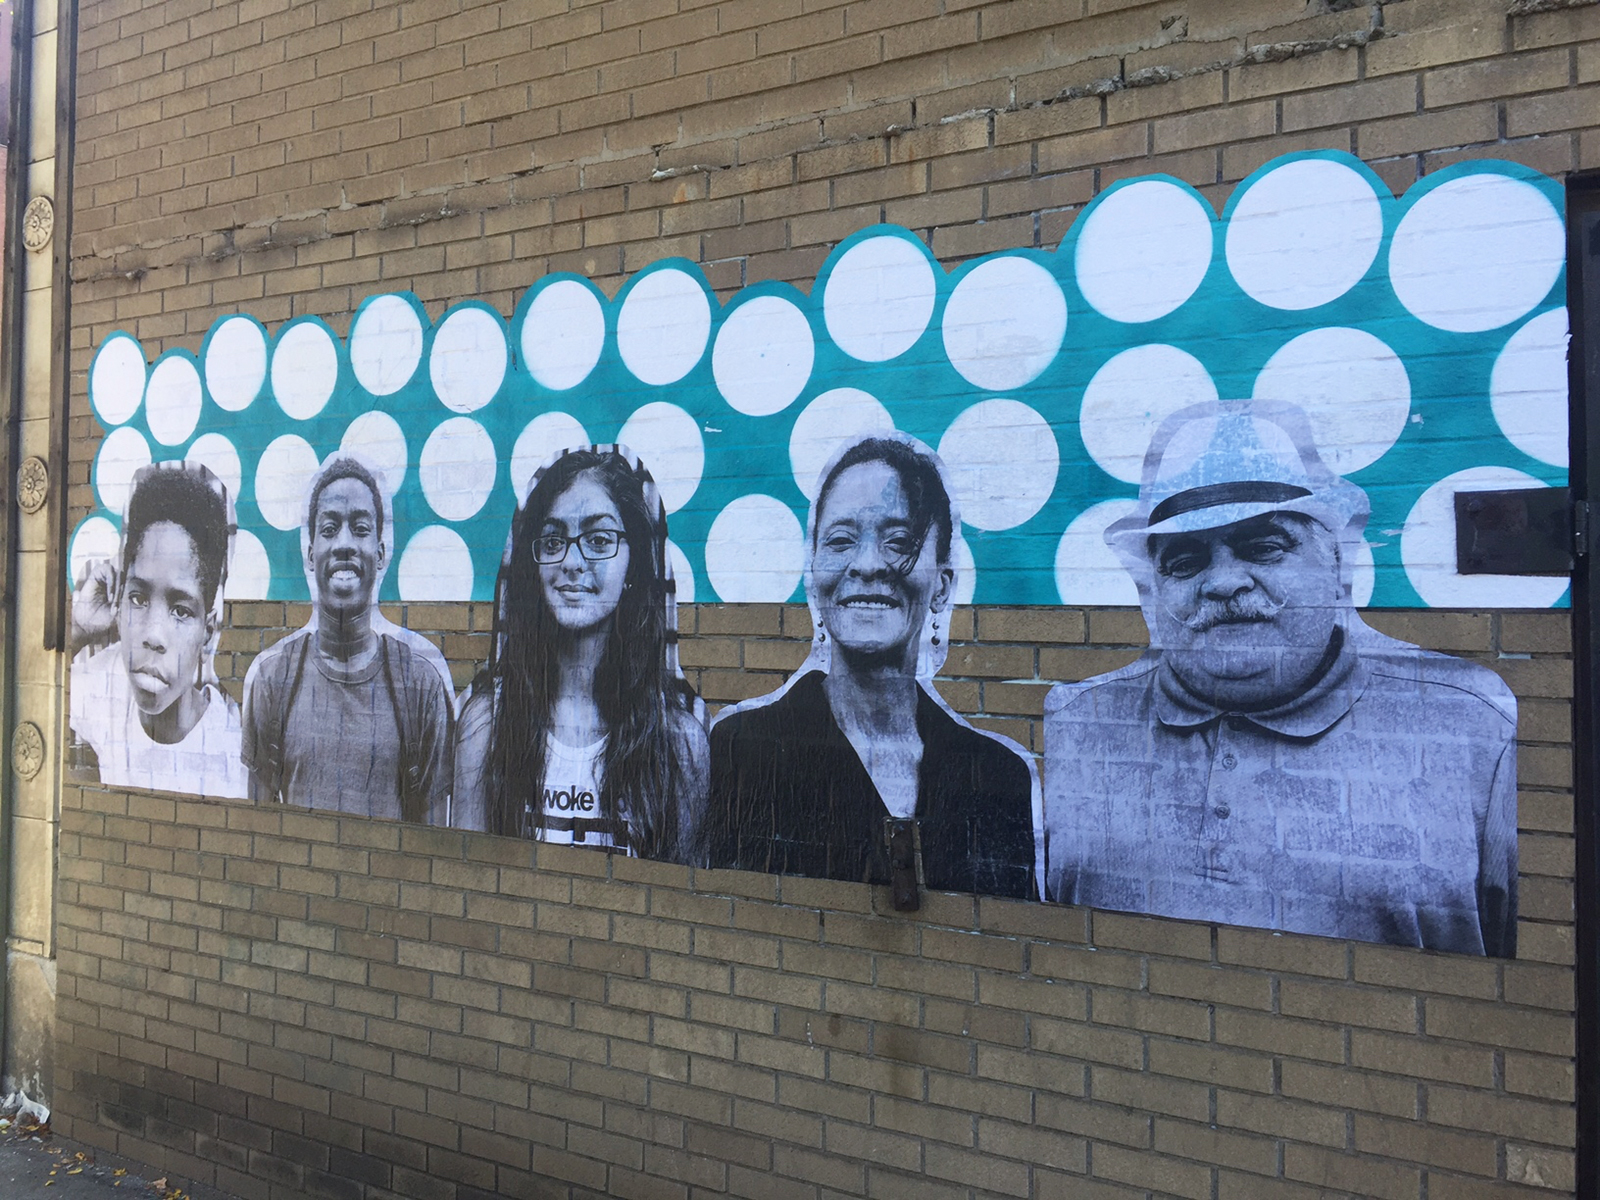 This mural is another sign of life returning to Braddock.